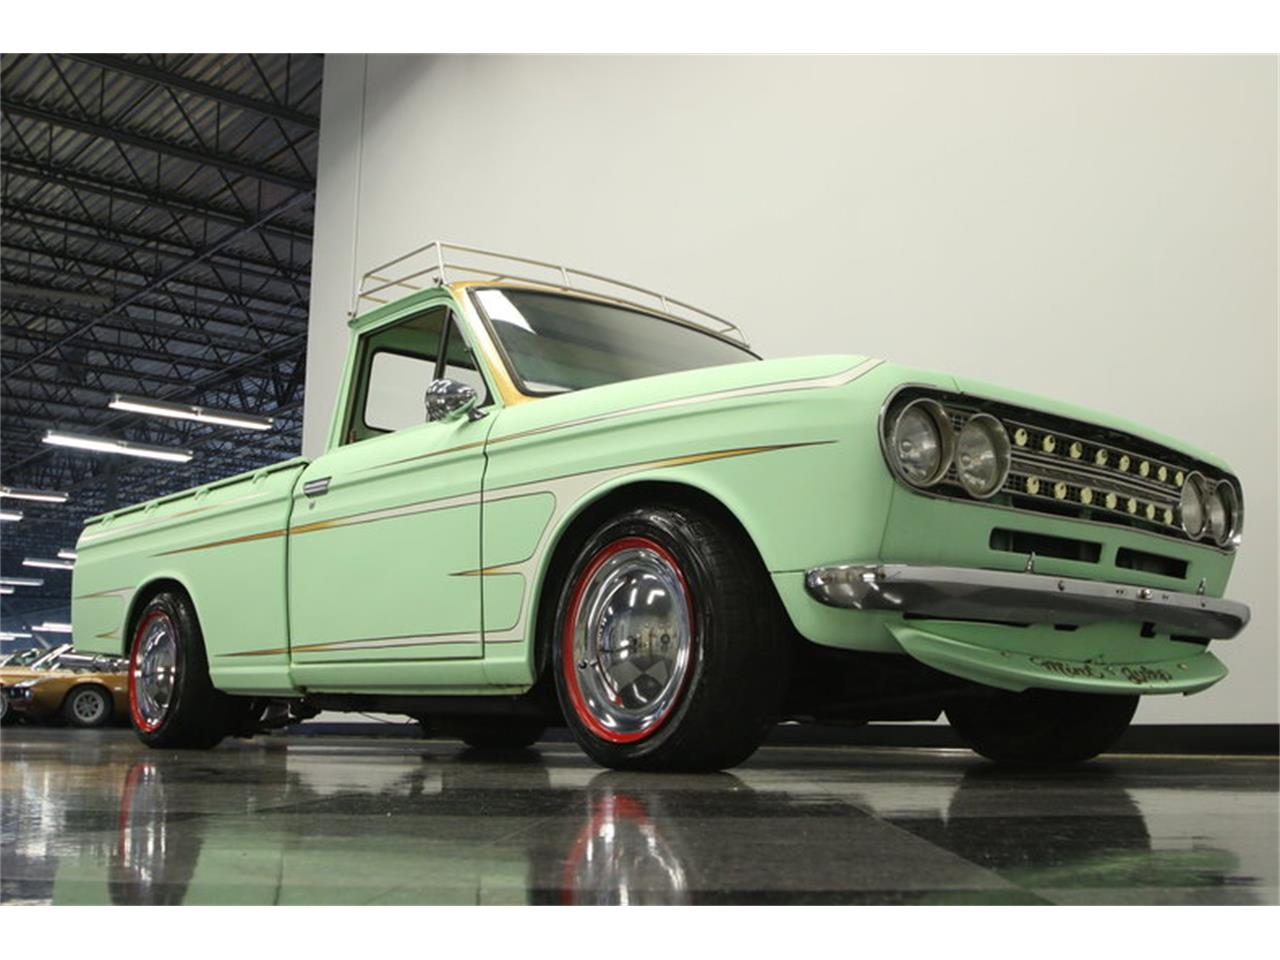 Large Picture of '72 1600 520 Pickup located in Florida - $9,995.00 - MB90